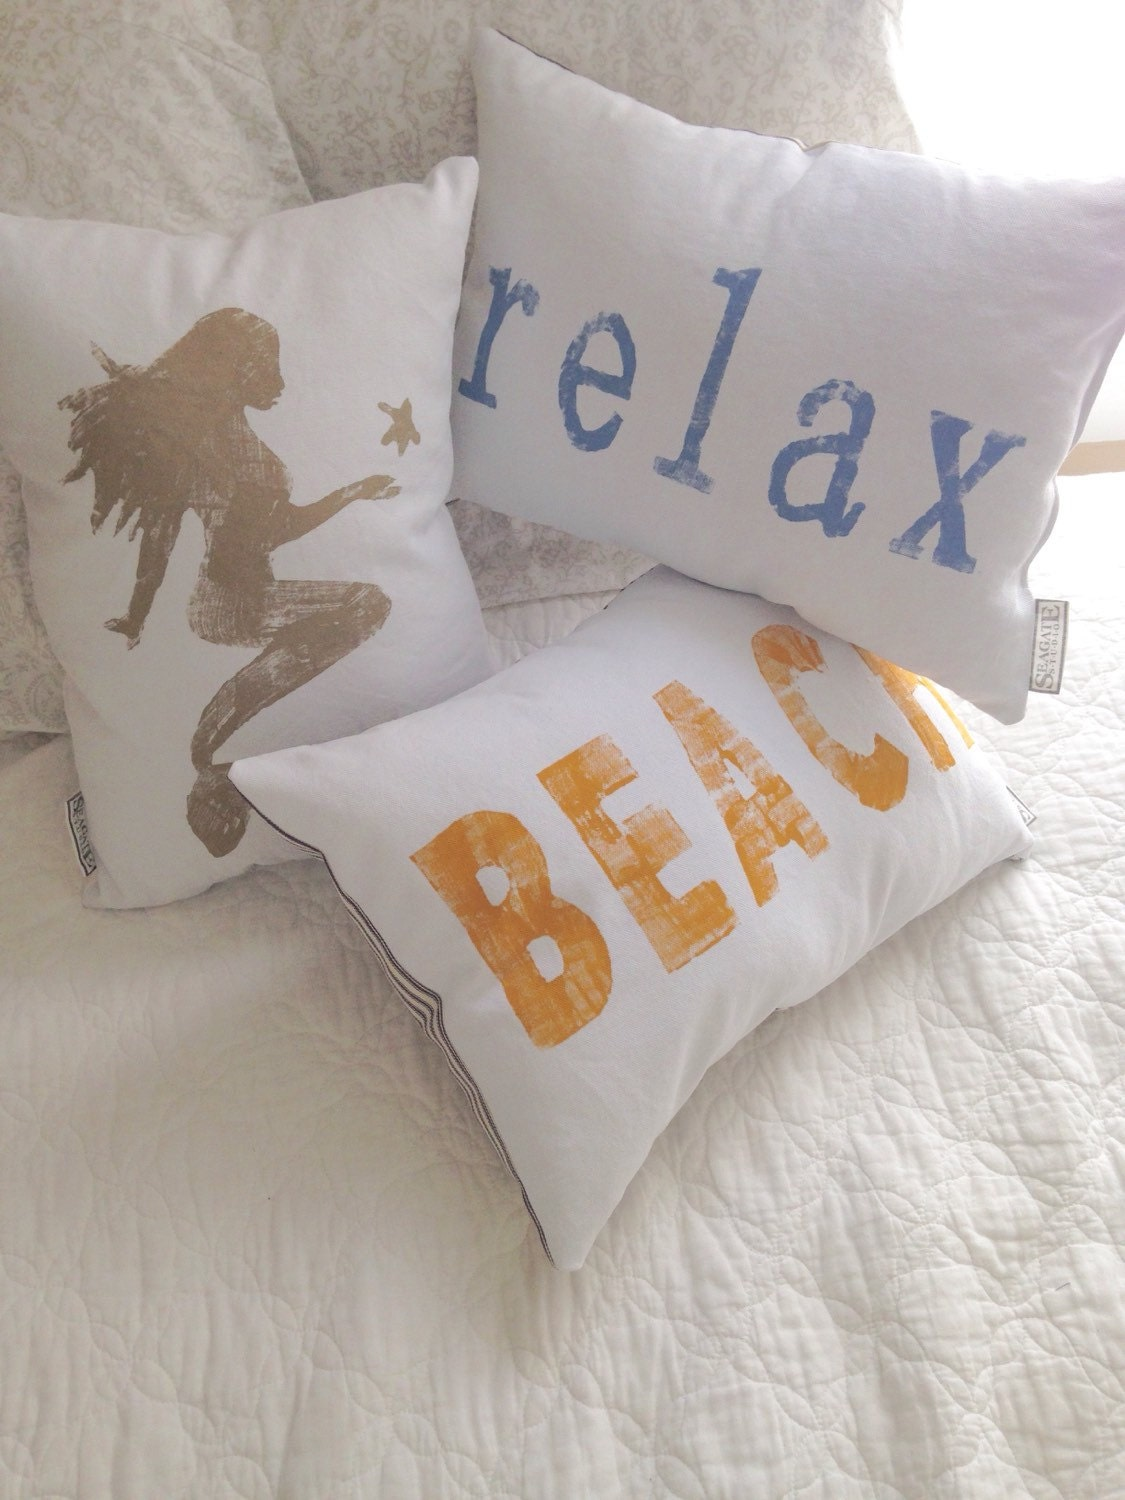 Throw Pillows That Say Relax : relax Pillow yoga pillow beach house decor by Seagate8Studio